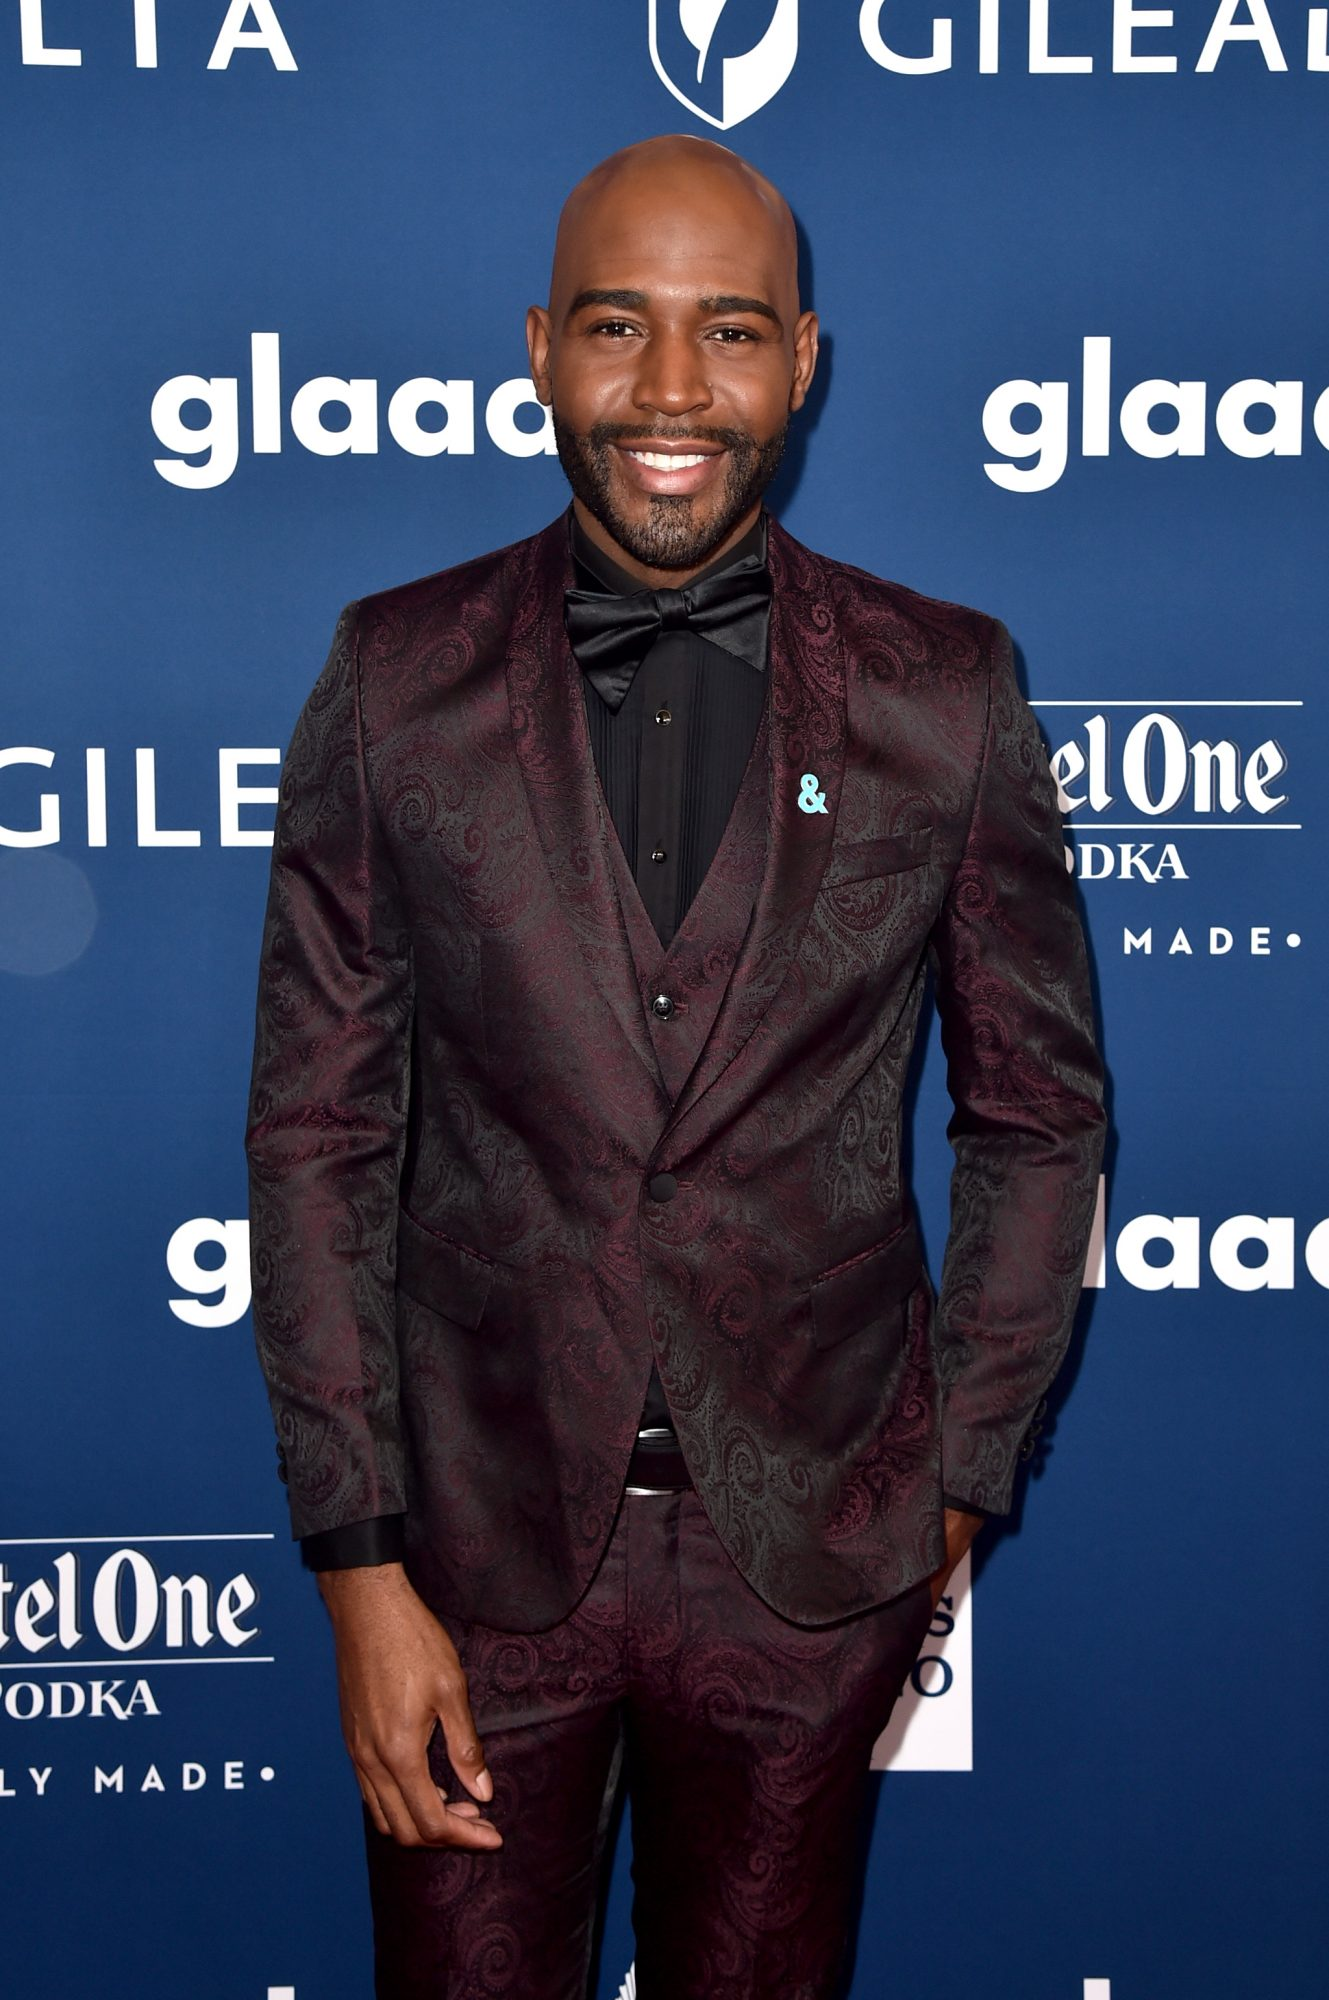 Queer Eye's Karamo Brown Reveals Past Suicide Attempt in Inspiring Video: 'Things Do Get Better'